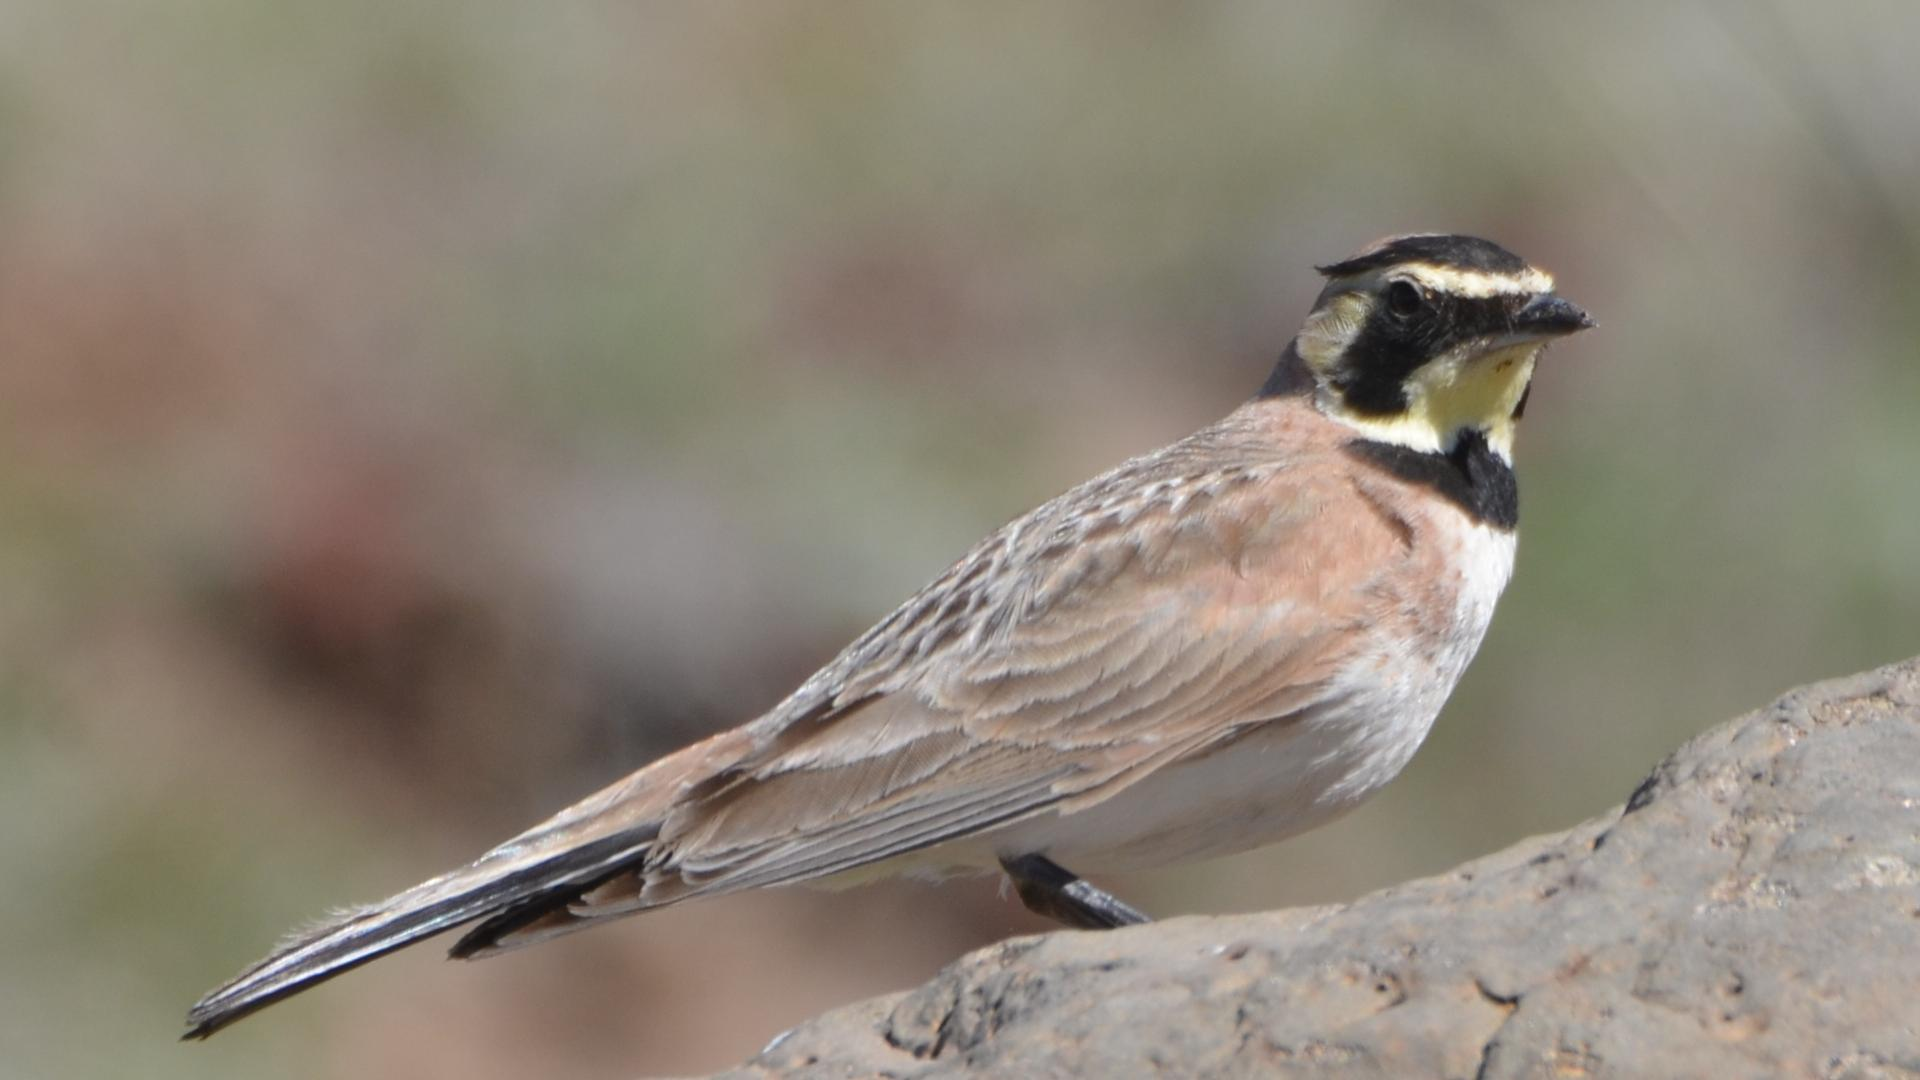 """- Horned Lark (Aremophila alpestris)Horned Larks live in areas that have short grass and little to no trees, such as certain prairies, grasslands, grazing meadows, and more urban areas. Their diet consists of seeds, insects, and other invertebrates. Their average wingspan is 11.8-13.4 in. and they weigh 1-1.7 oz. Horned Larks sing a series of tinkling """"ti-ti"""" phrases. They are protected on the US Migratory Bird list.Photo Credits: Andy Reago & Chrissy McClarren"""